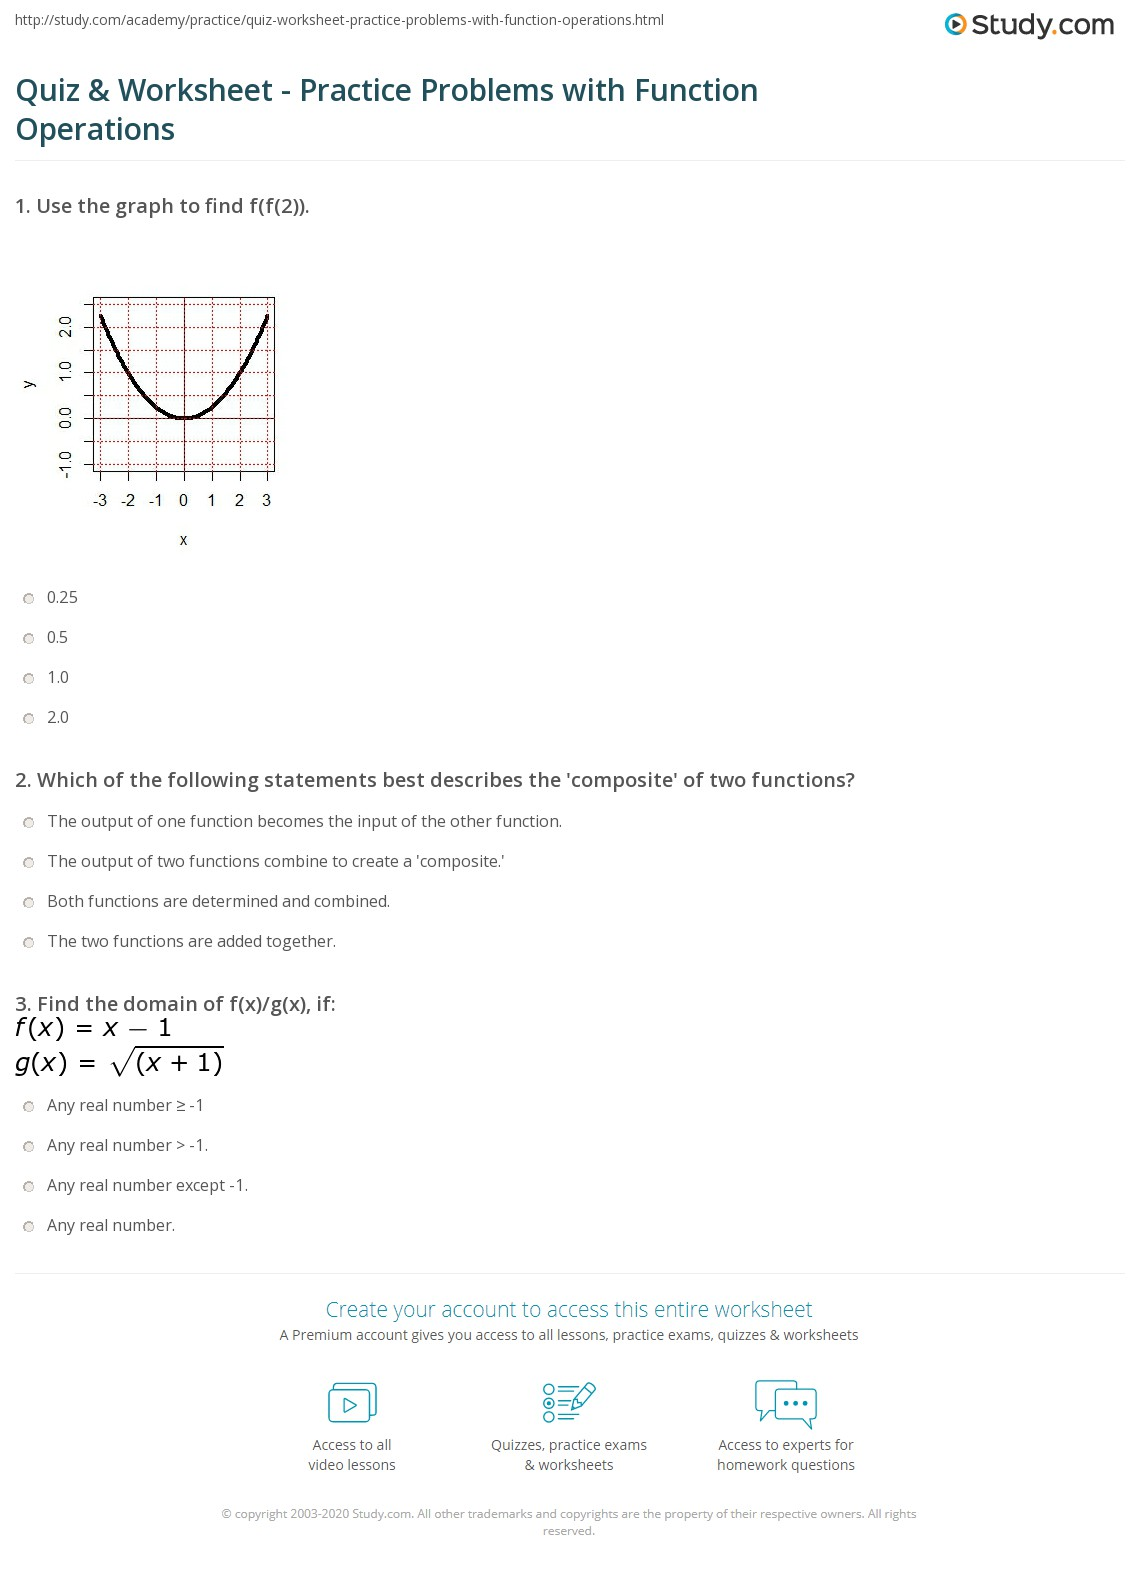 Quiz U Worksheet Practice Problems With Function